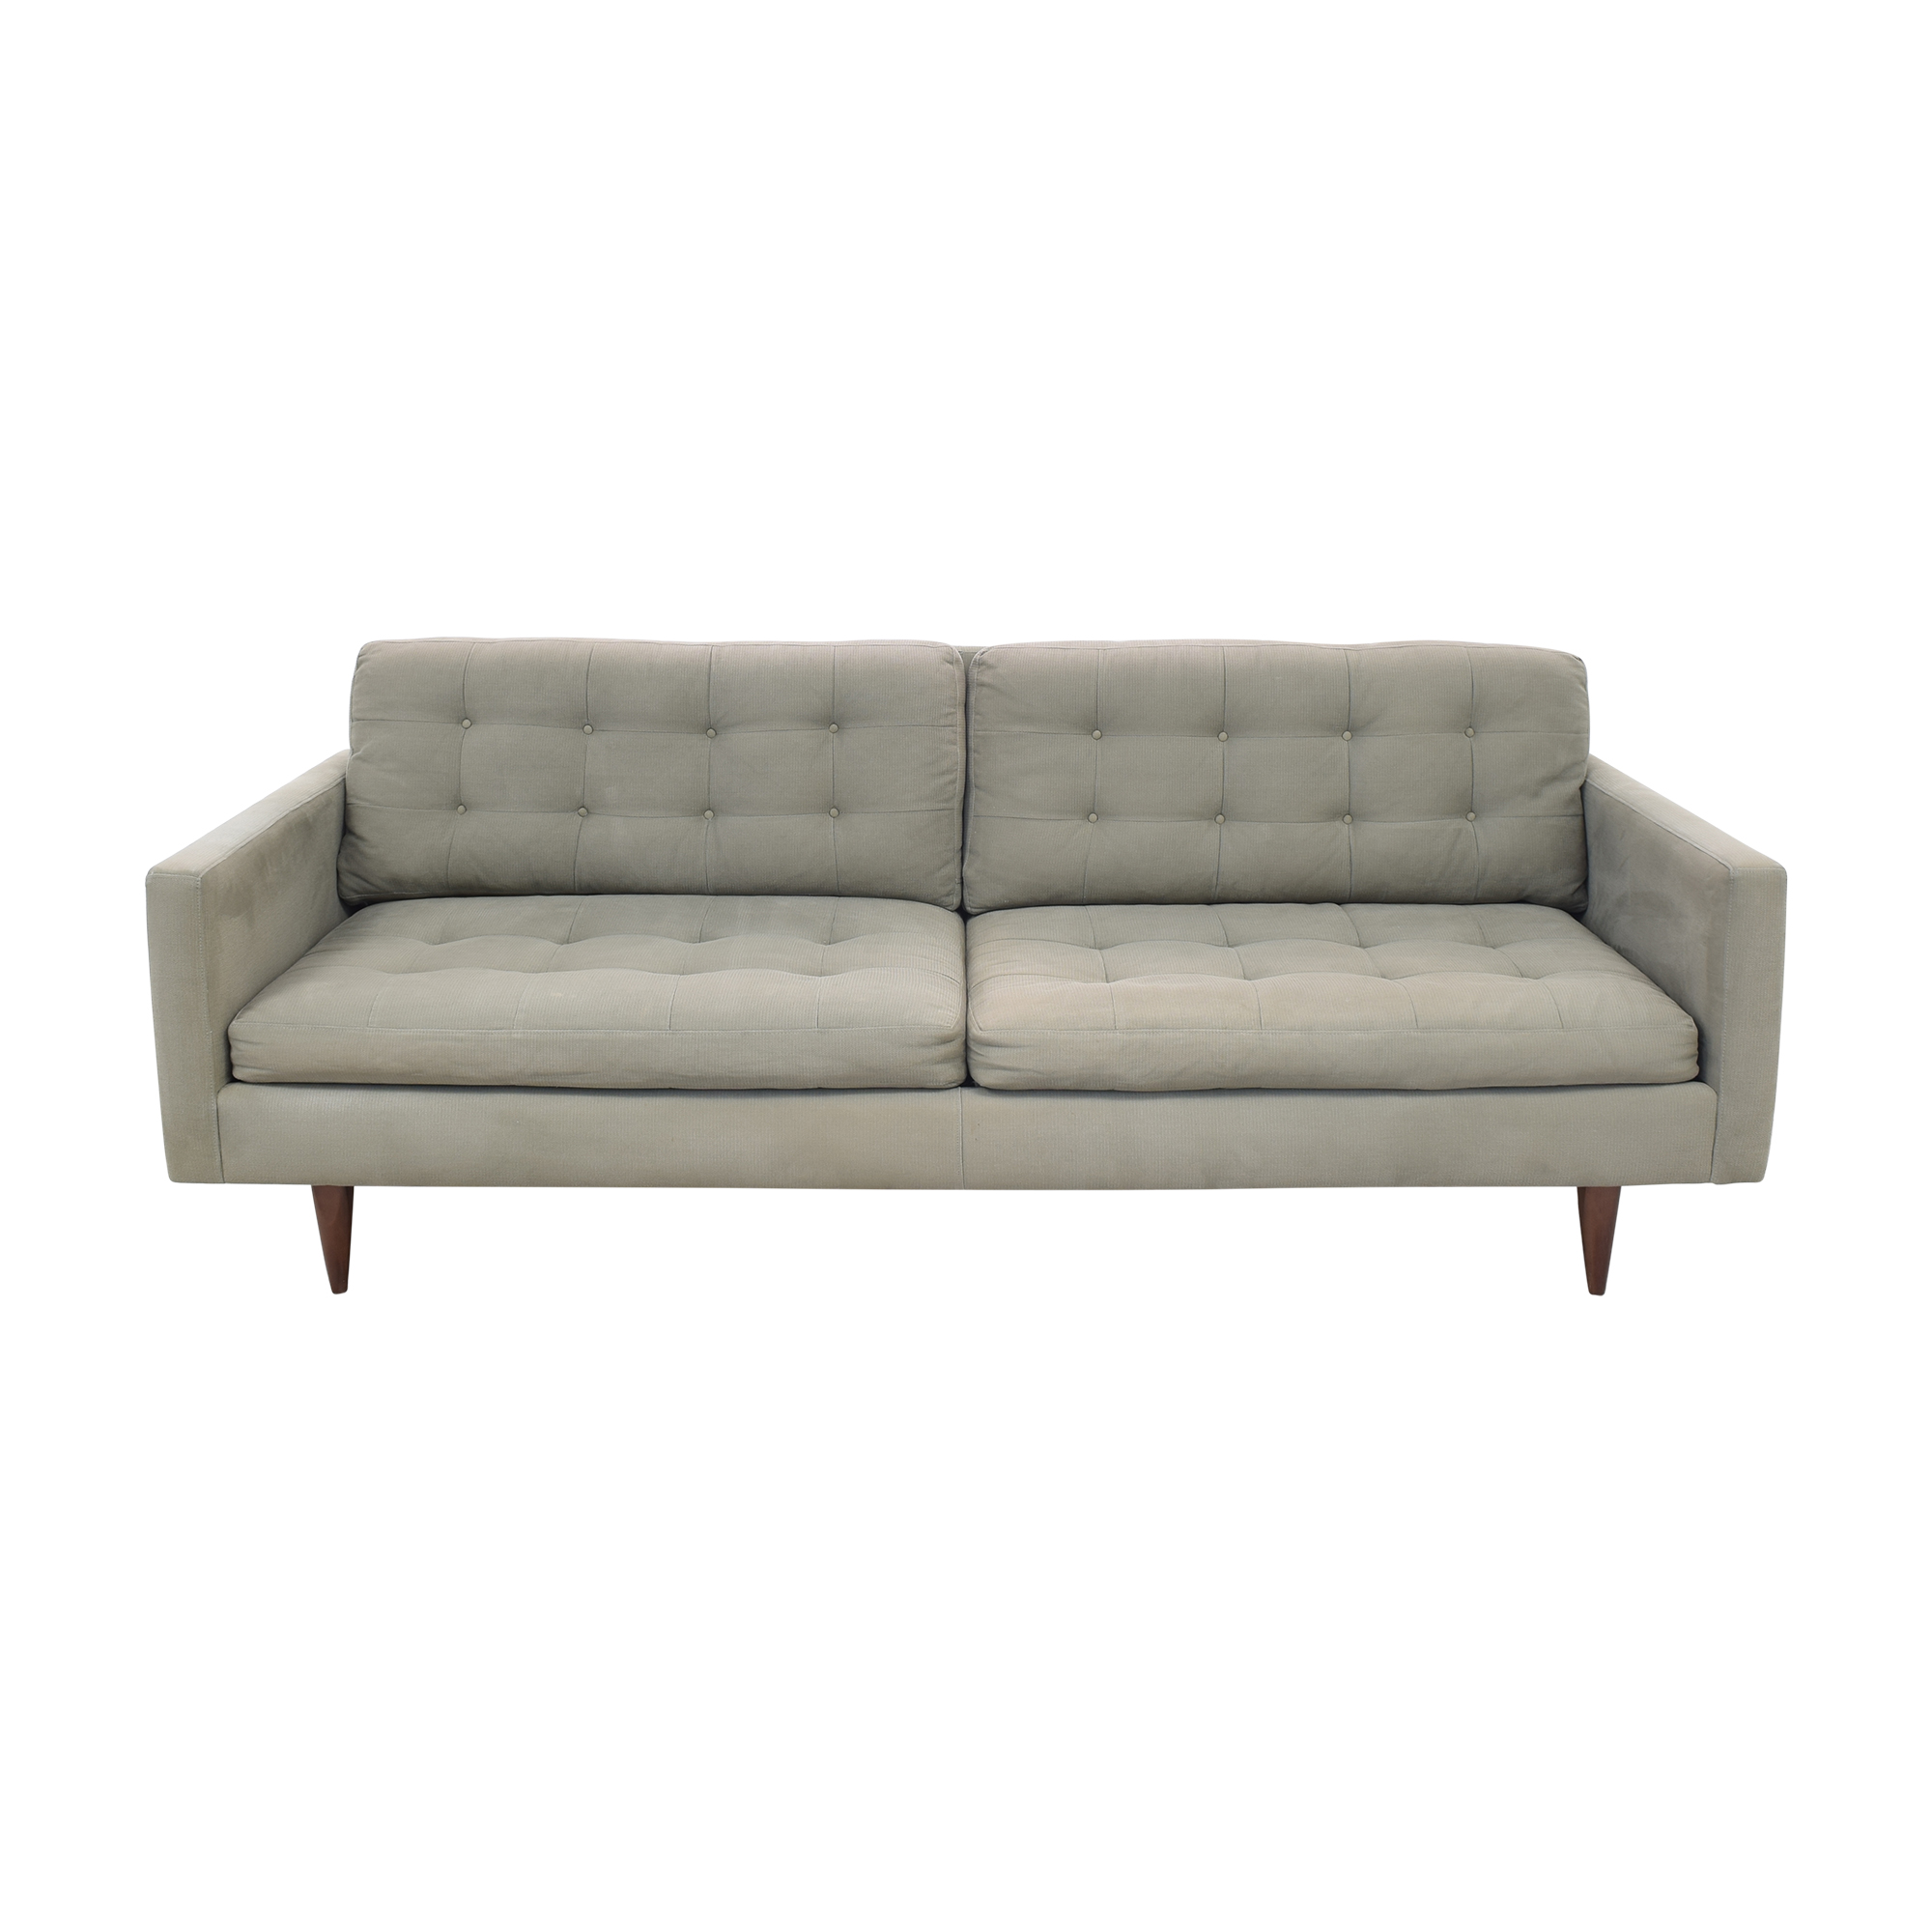 buy Crate & Barrel Crate & Barrel Petrie Mid Century Sofa online